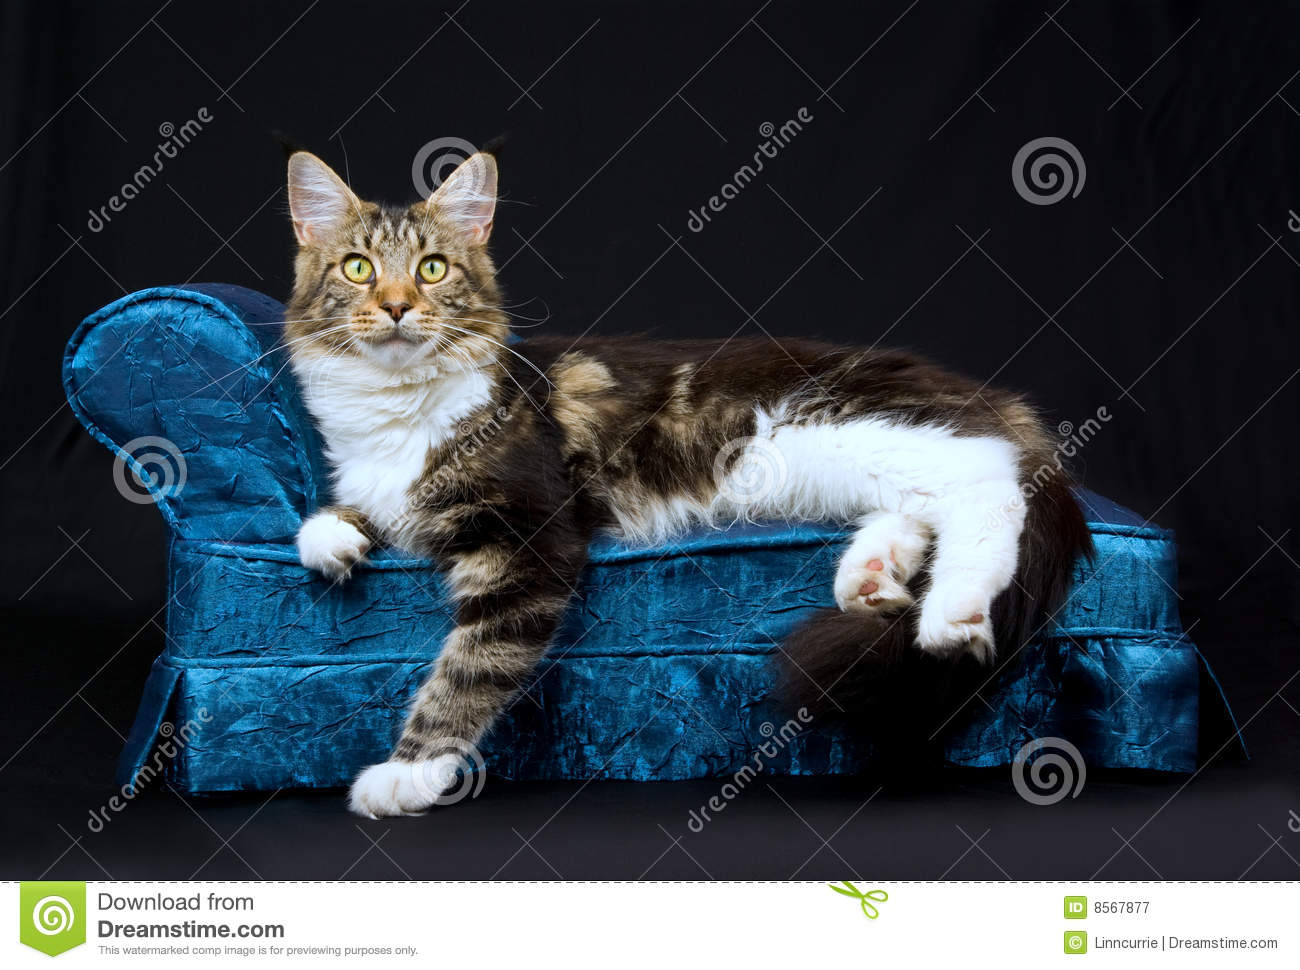 cat tunnel sofa price chandler bonded leather sectional with console beautiful maine coon on blue chaise stock image